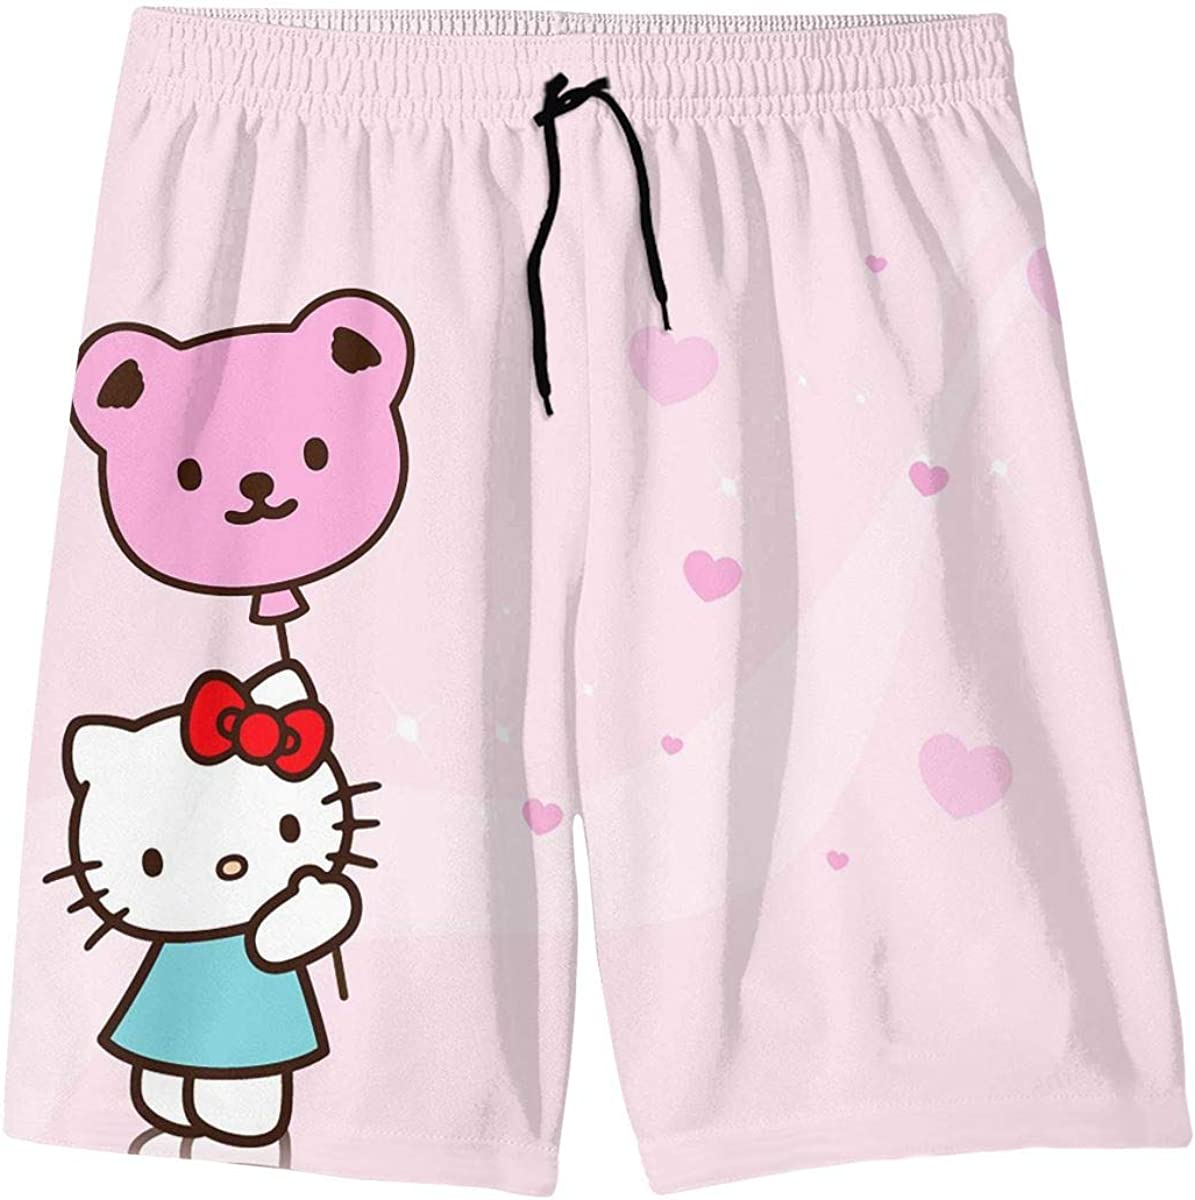 Swim Trunks Hello Kitty with Balloon Quick Dry Beach Board Shorts Bathing Suit with Side Pockets for Teen Boys